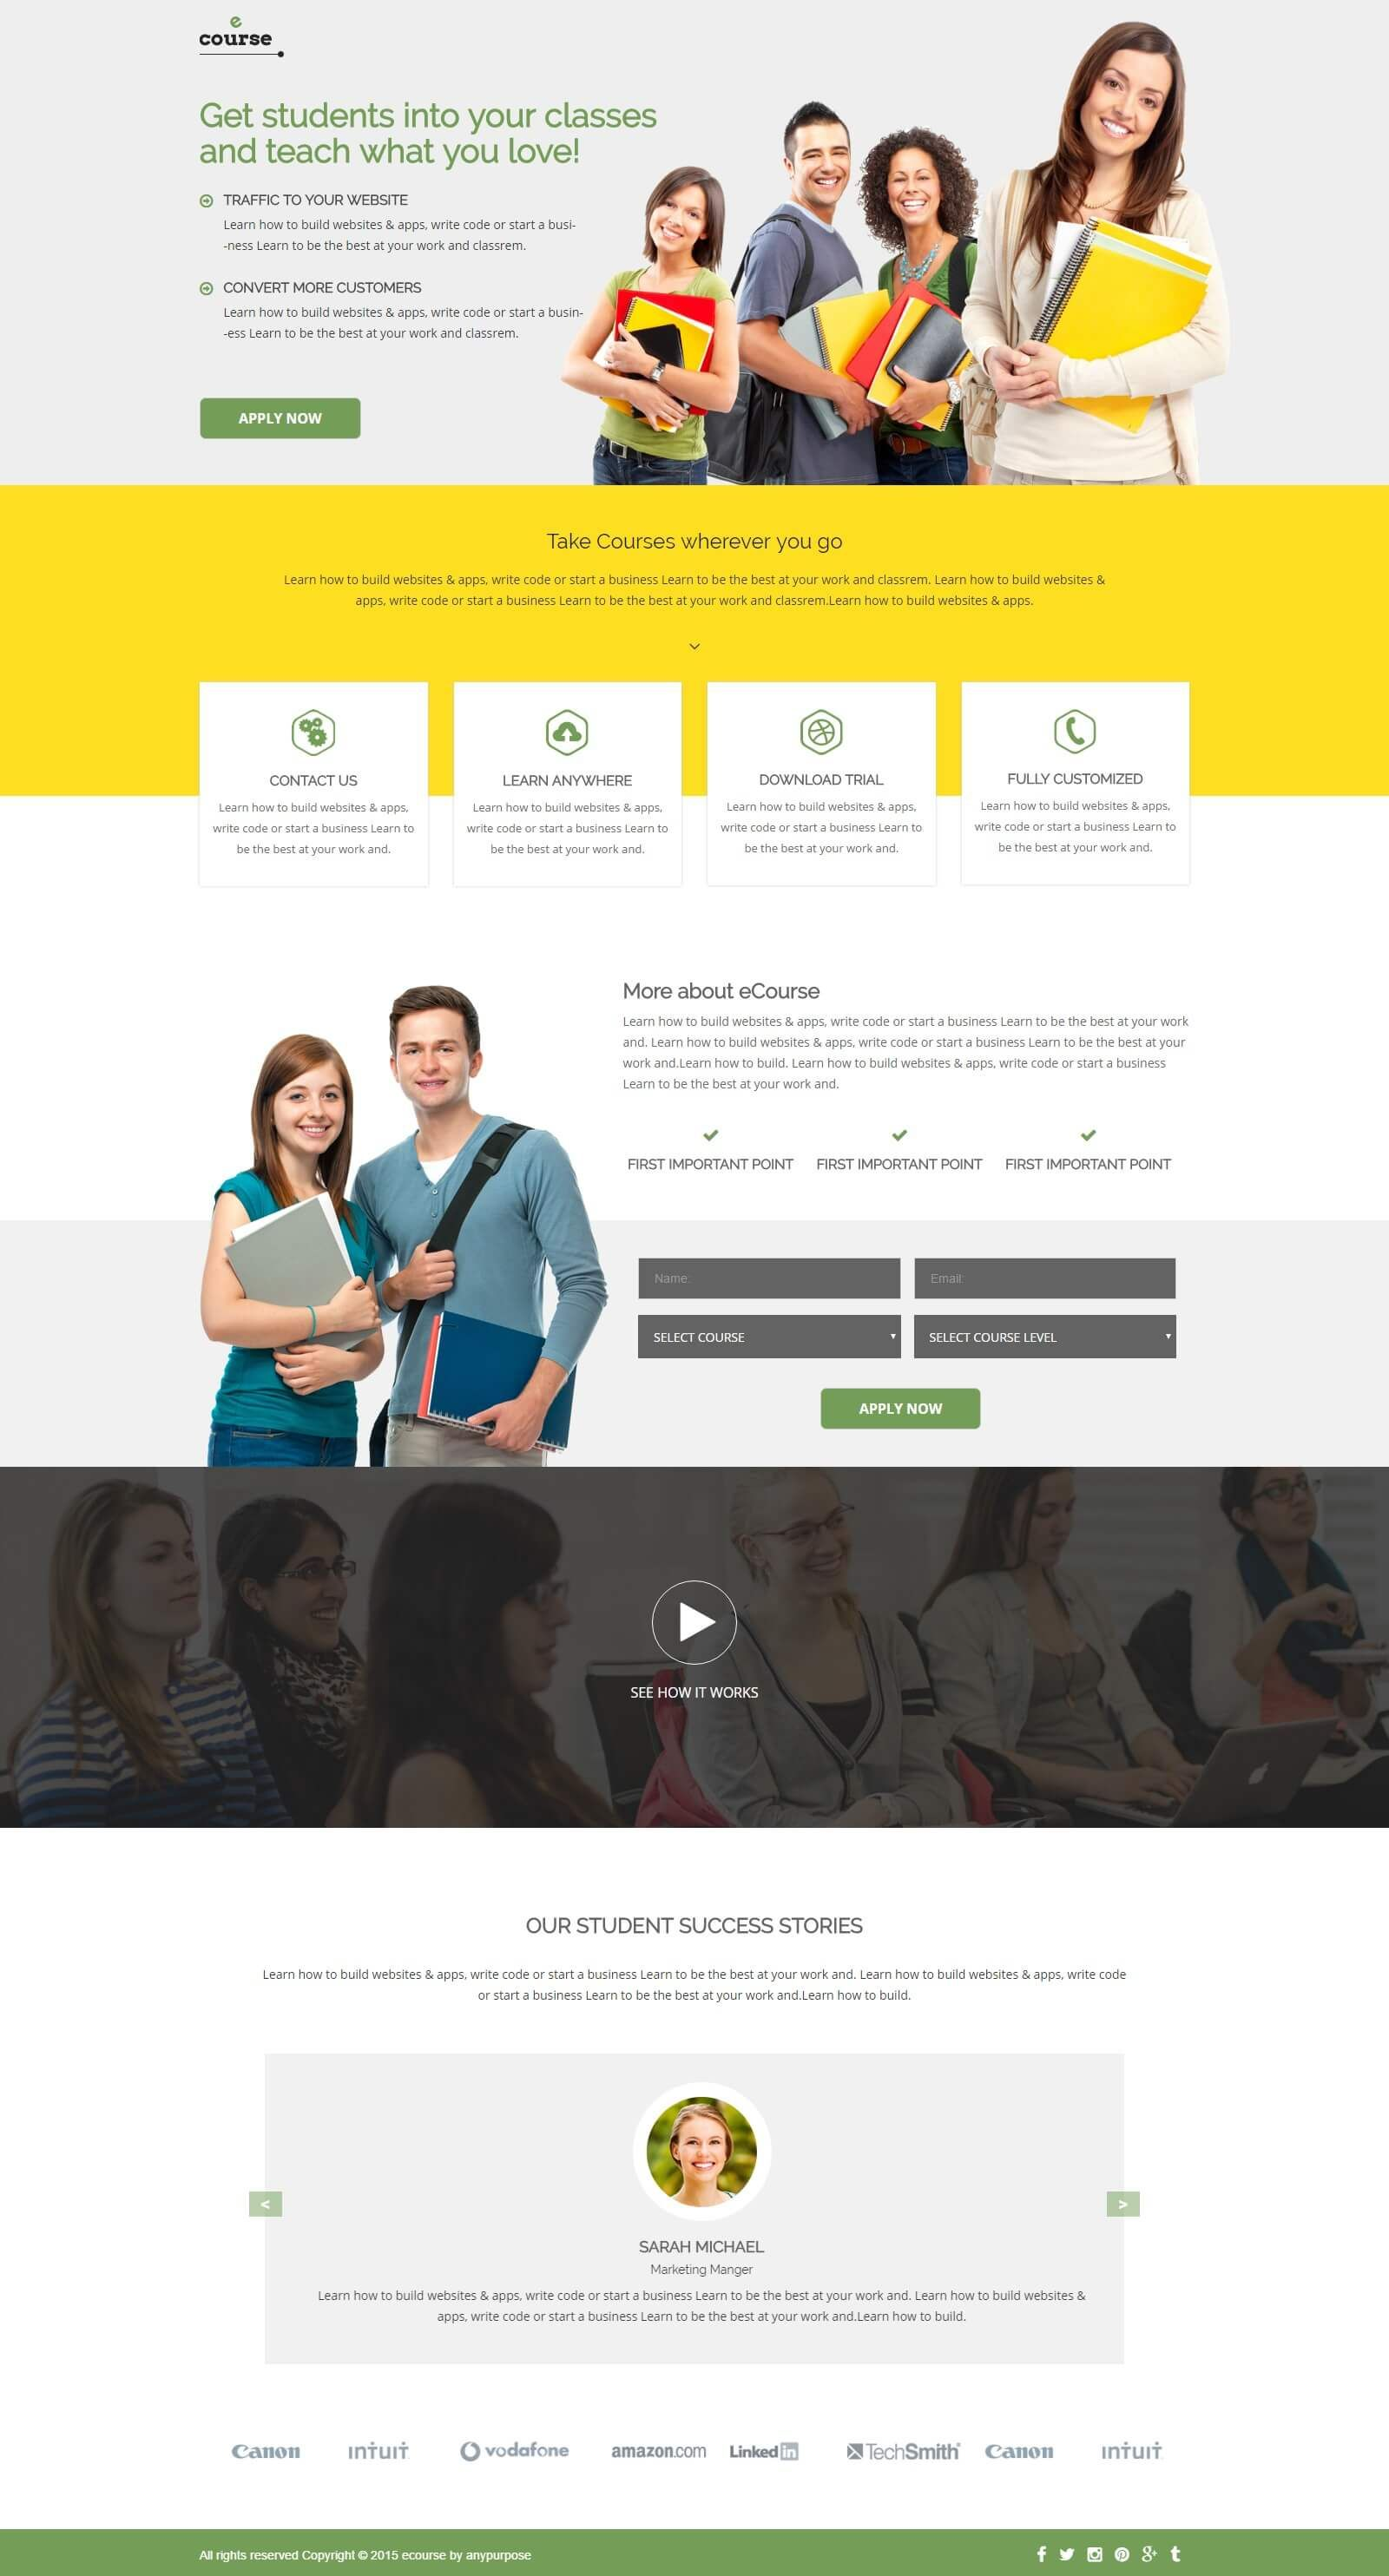 e-course responsive html5 landing page design template to get the